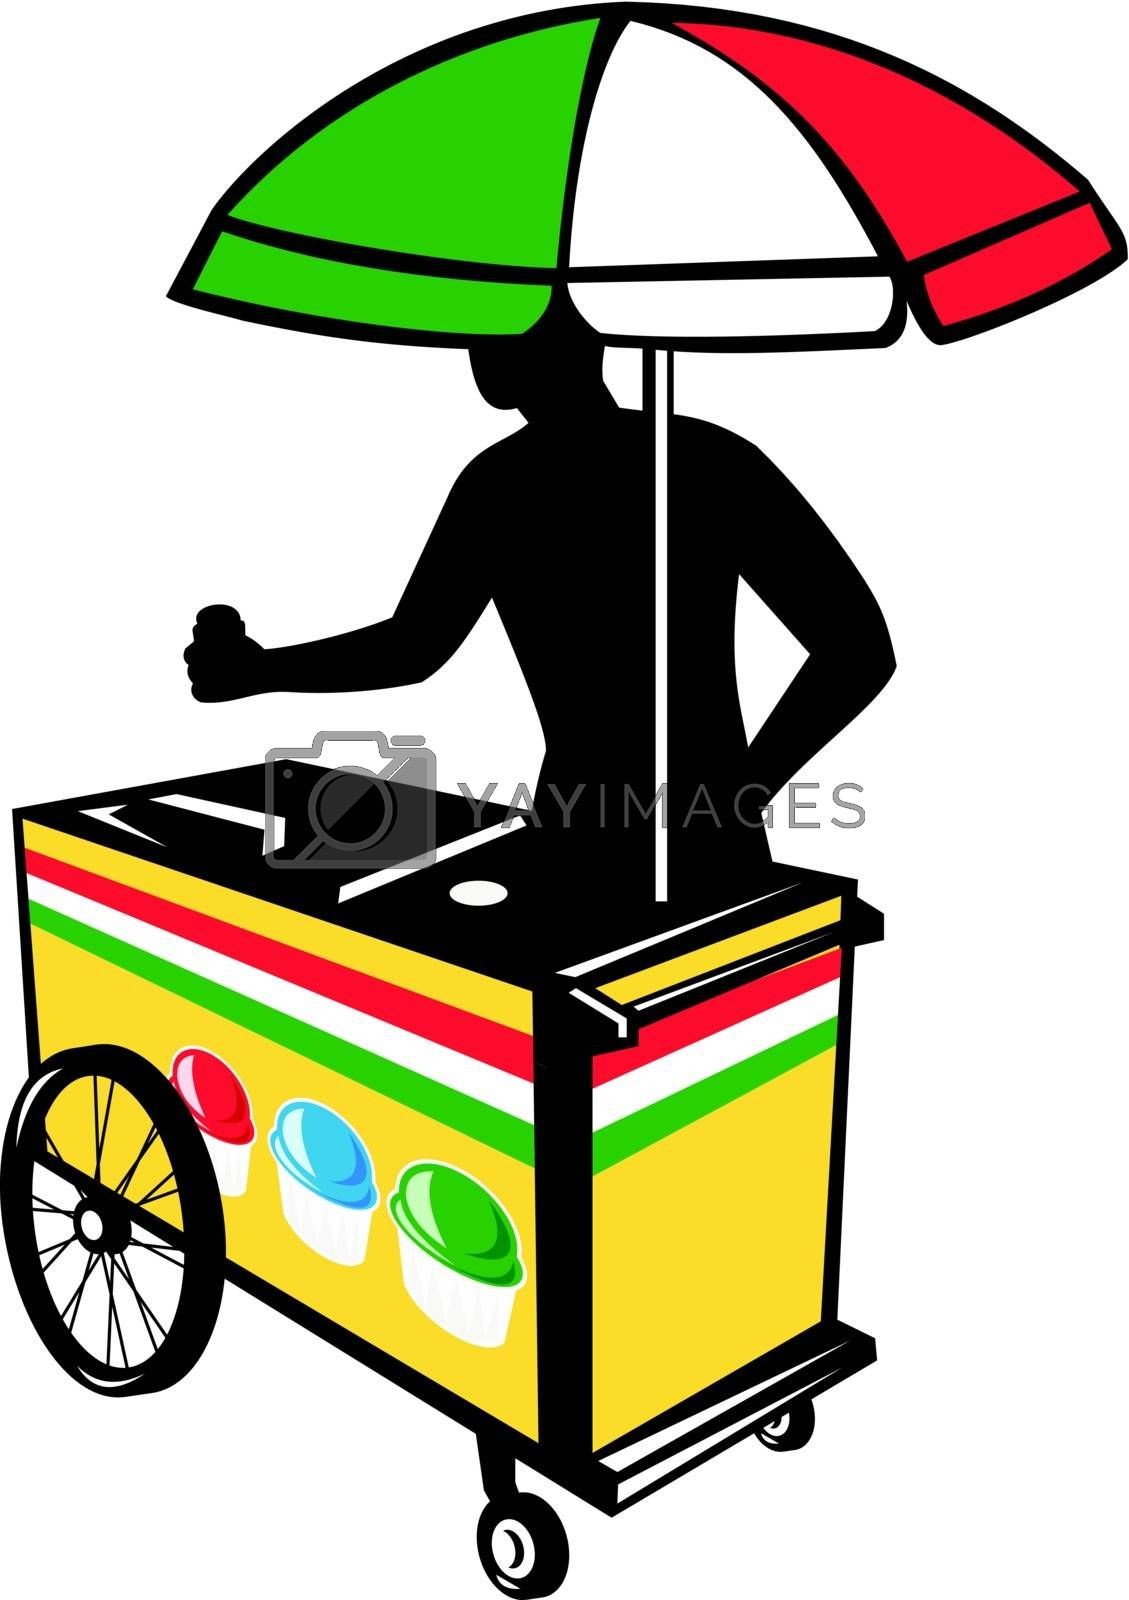 Illustration of an Italian ice push cart vending vendor with umbrella in flag of Italy colors done in retro style on isolated white background business card format.